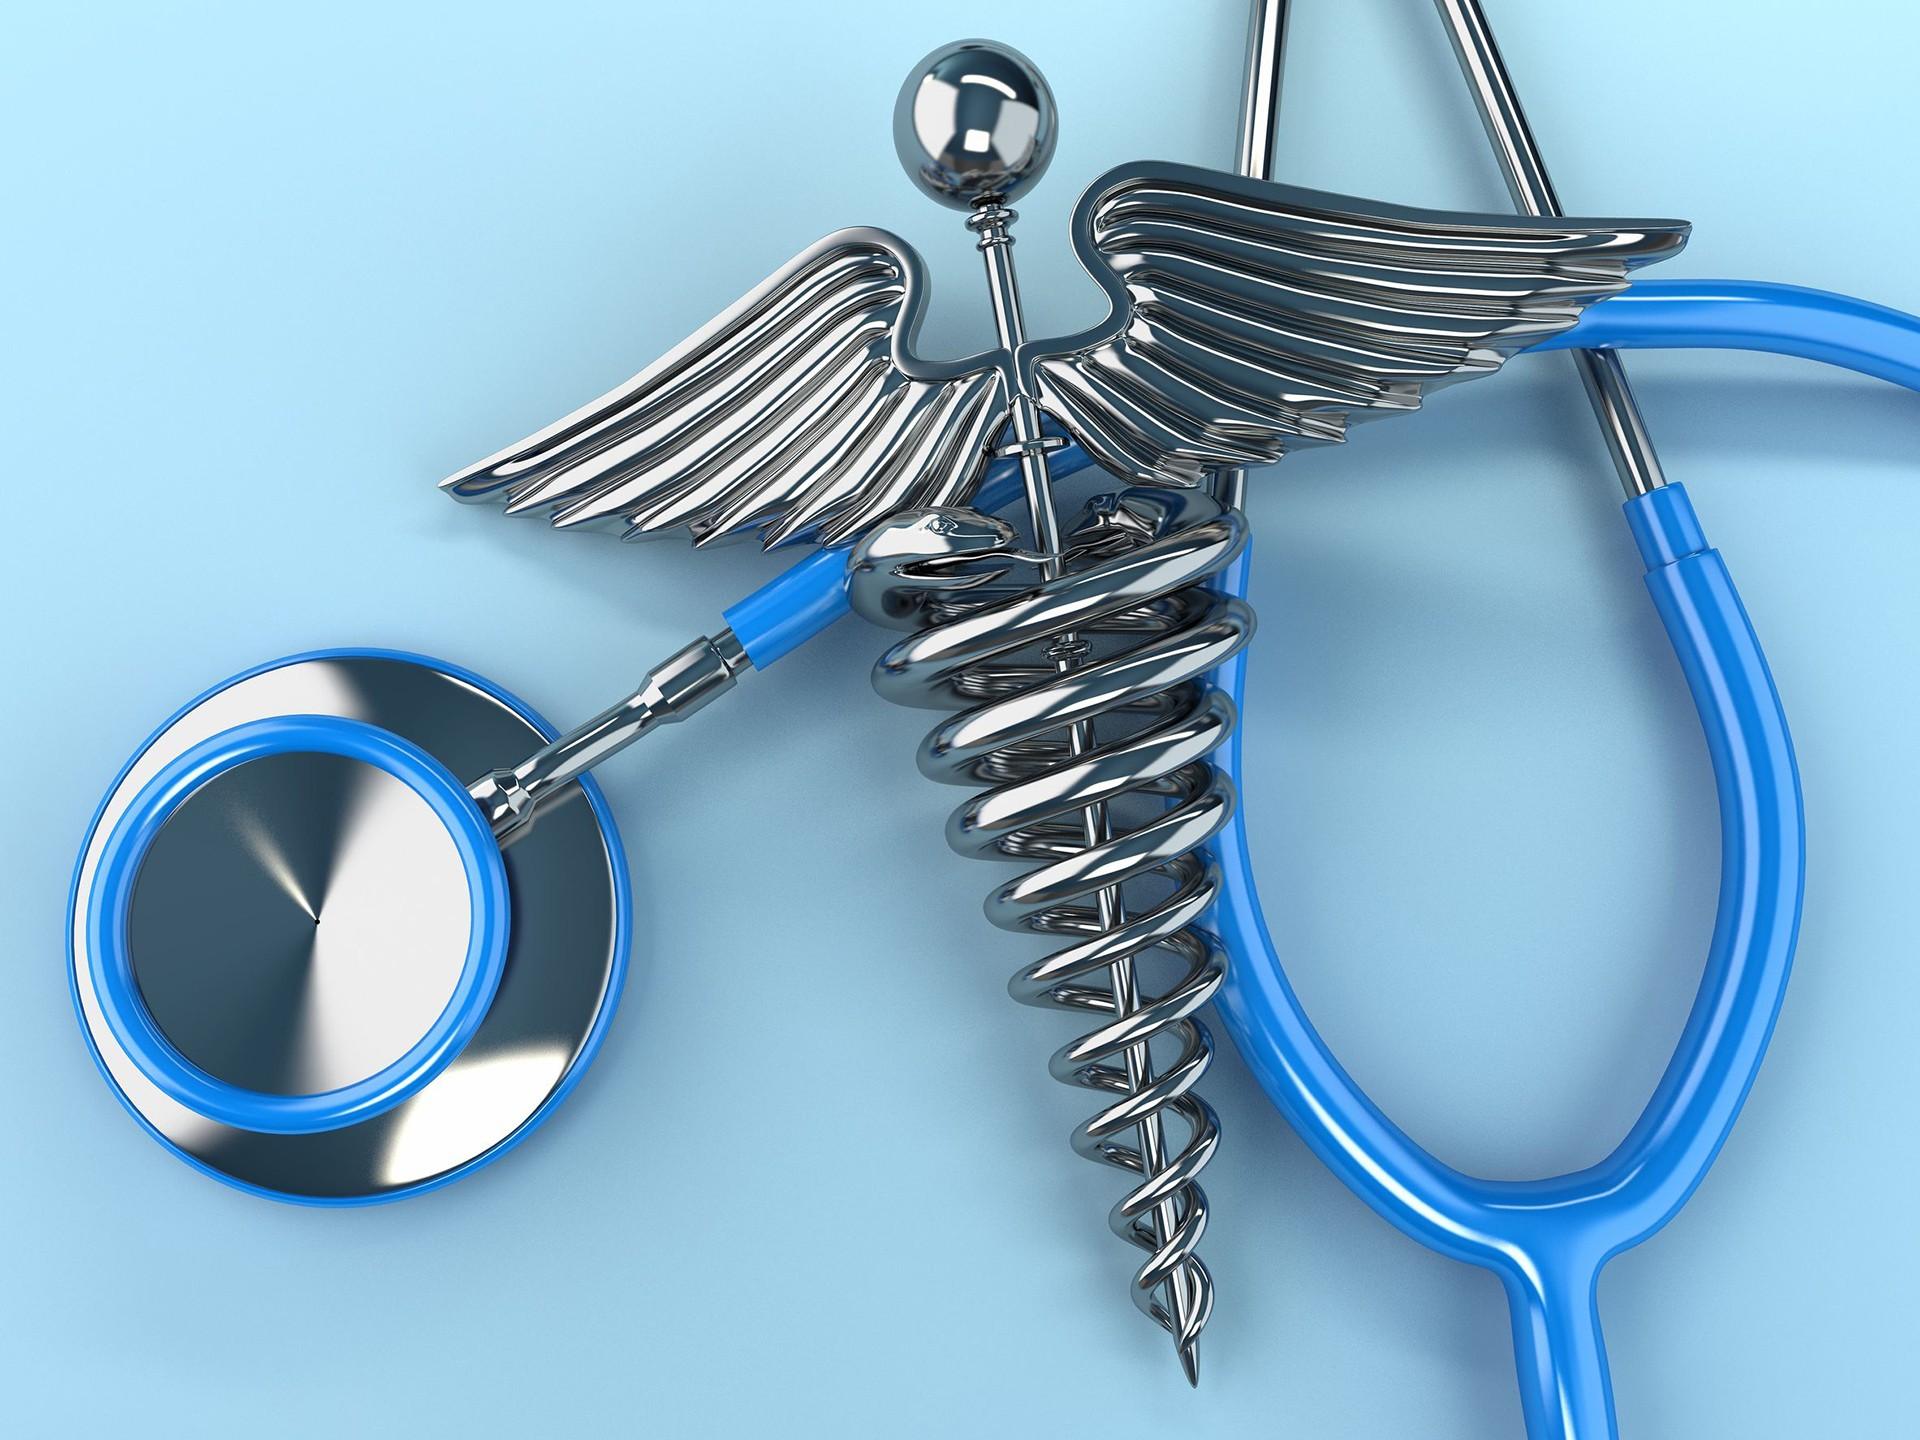 3d Angel Wallpapers Free Medical Wallpaper 183 ① Download Free Cool Hd Backgrounds For